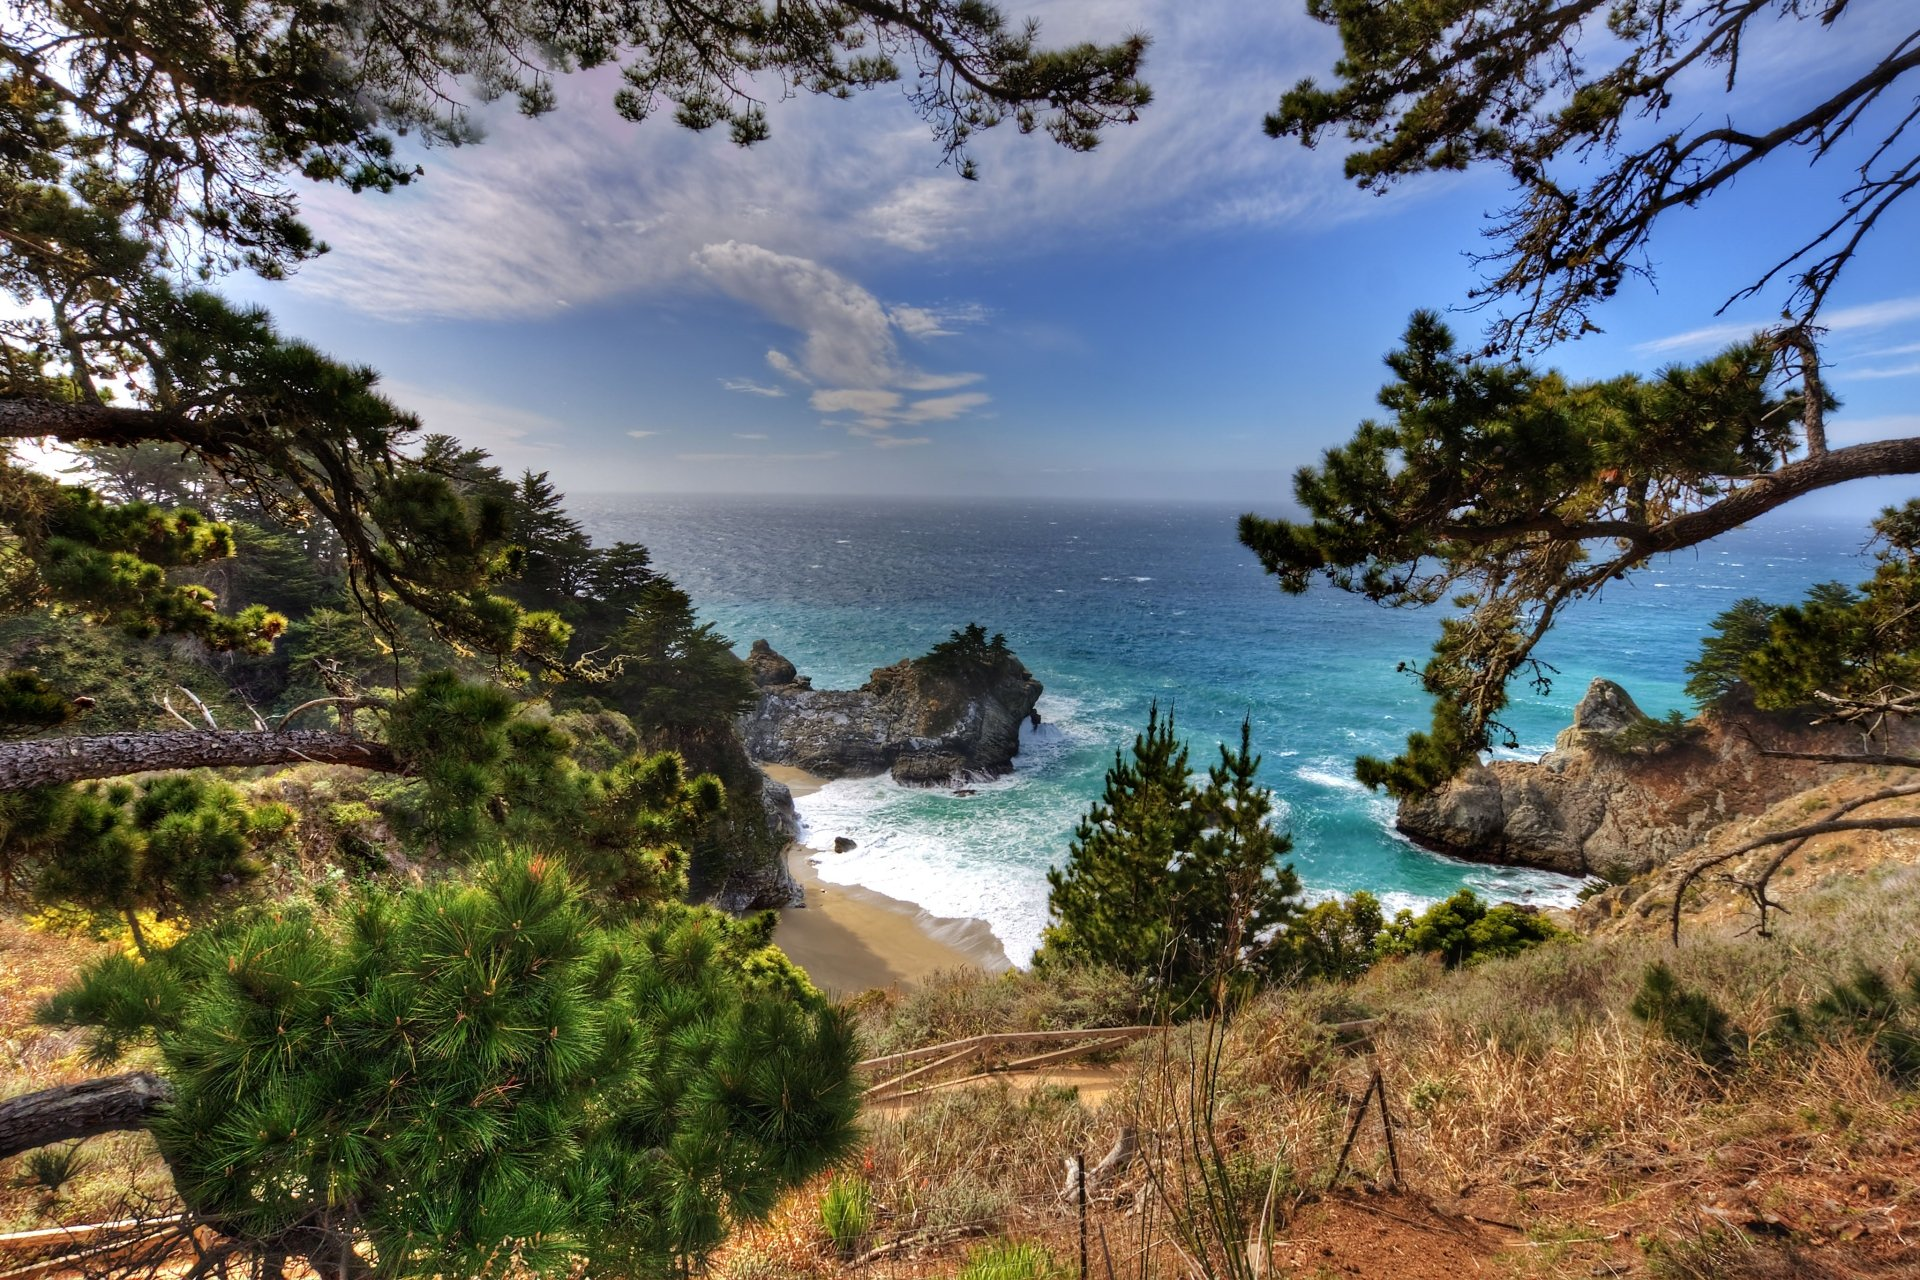 Earth - Coastline  Big Sur Sea Mountain Julia Pfeiffer Burns State Park McWay Falls Rock Earth Coast California Horizon Ocean Tree Wallpaper